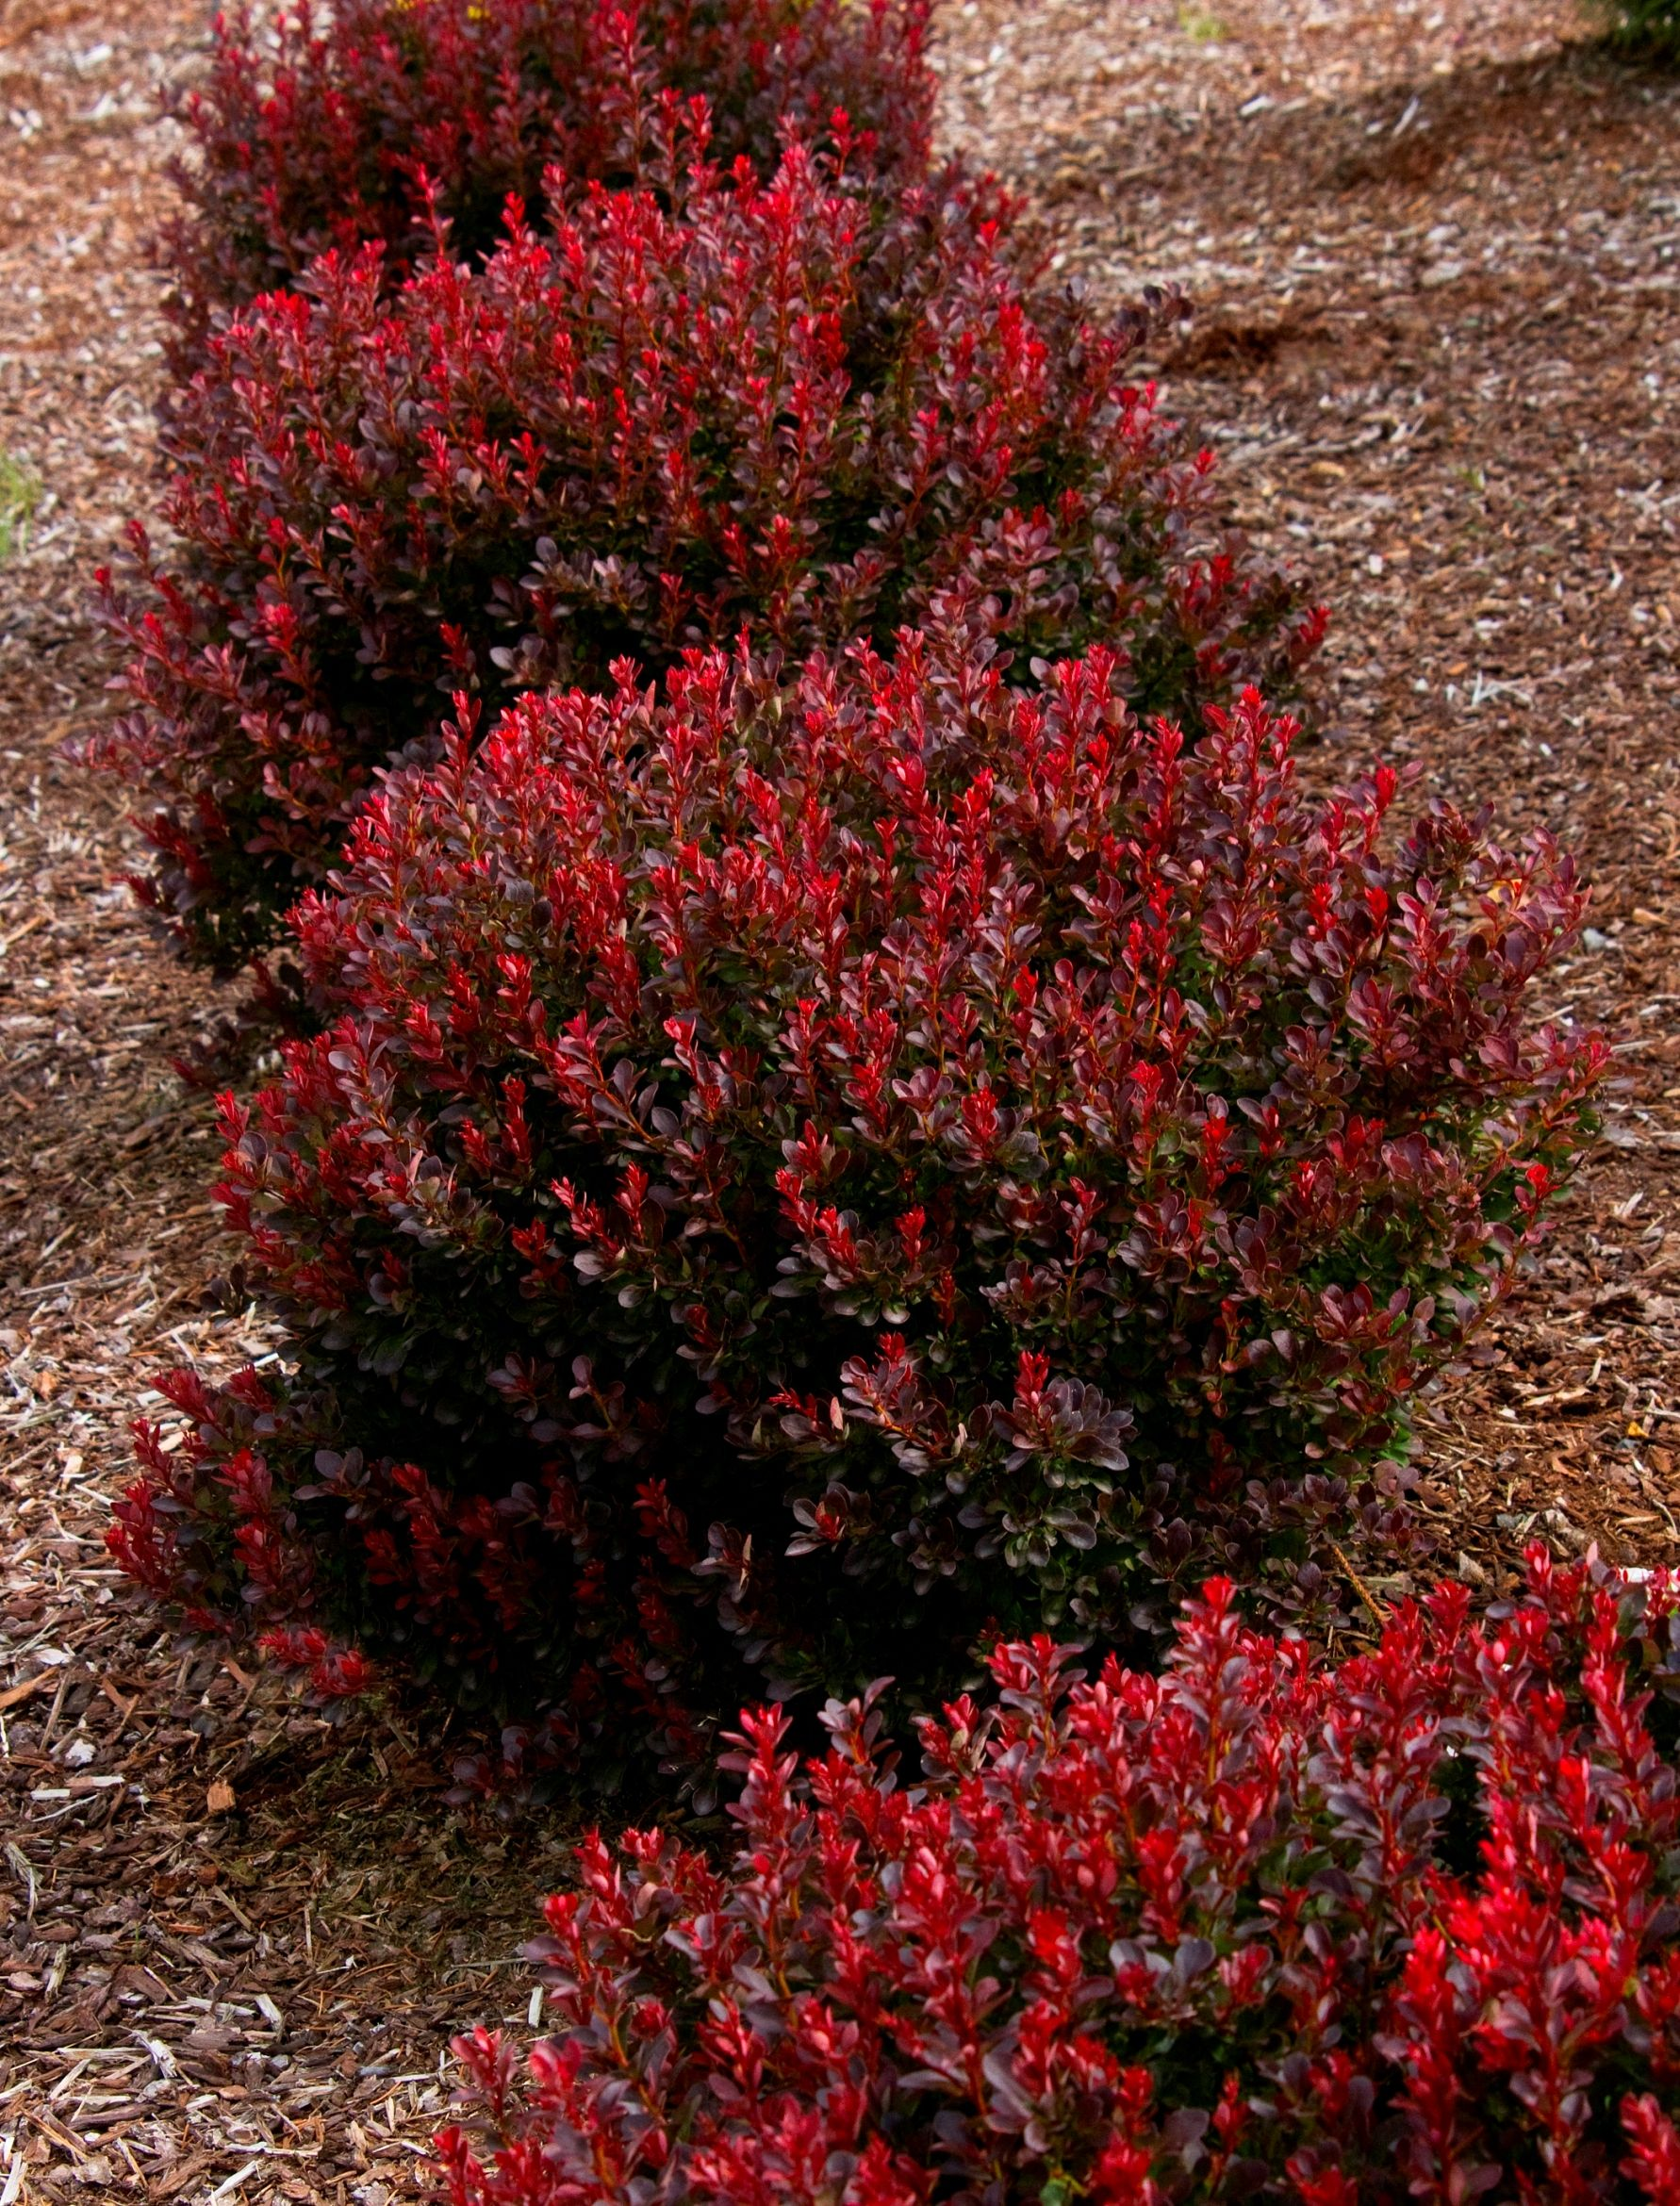 Shiny Deep Red Leaves Cover The Naturally Dense Globe Shaped Shrub